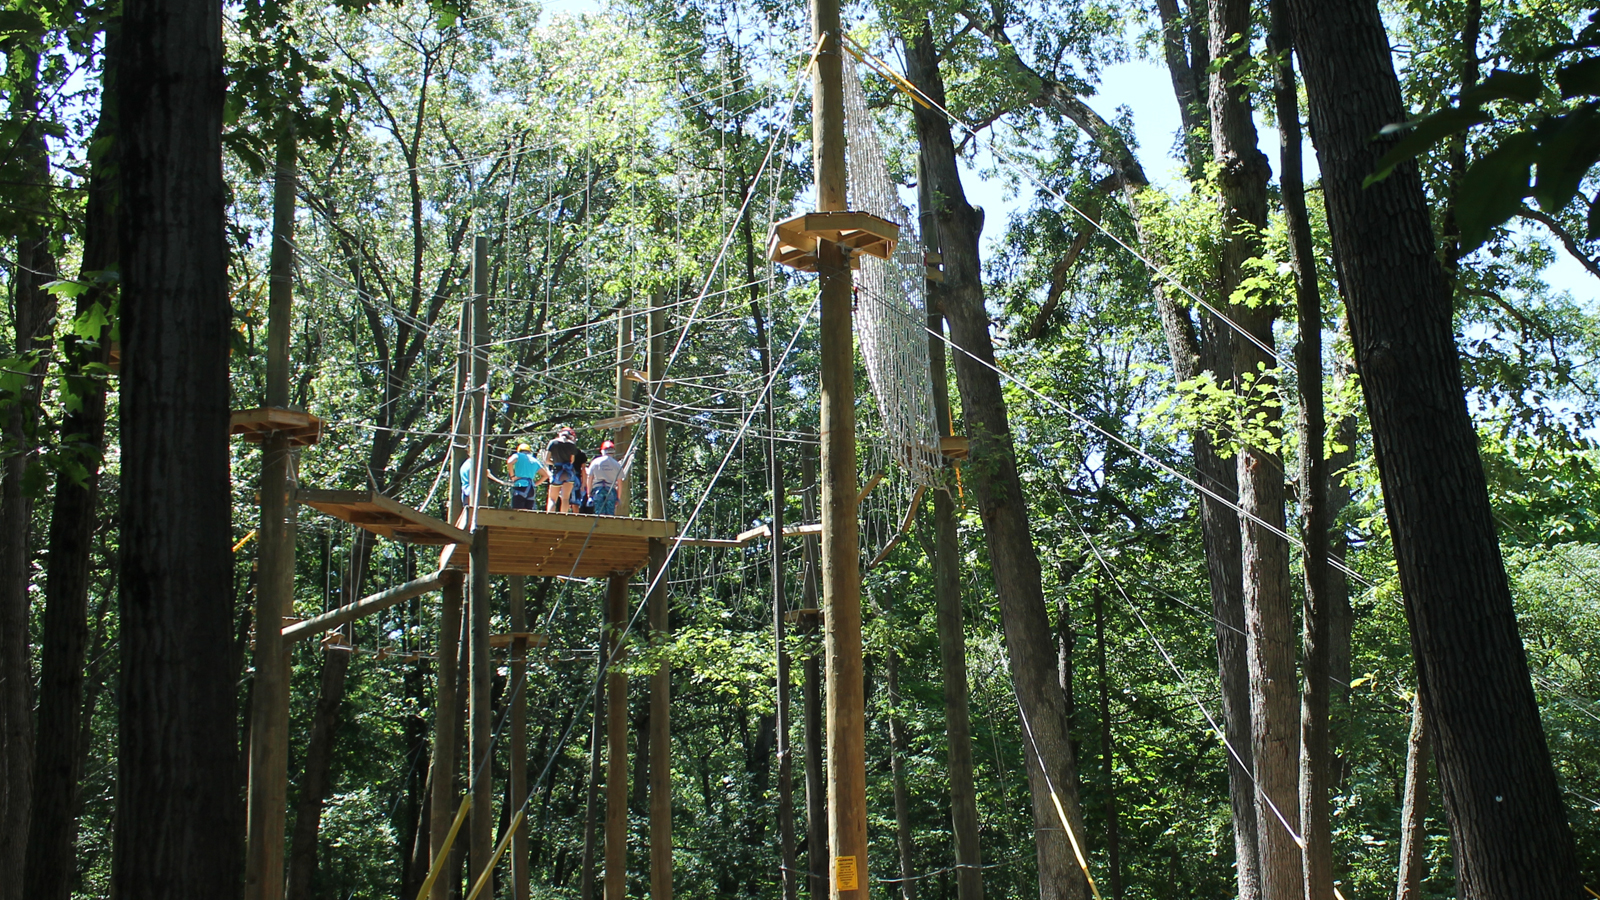 View of High Ropes Course